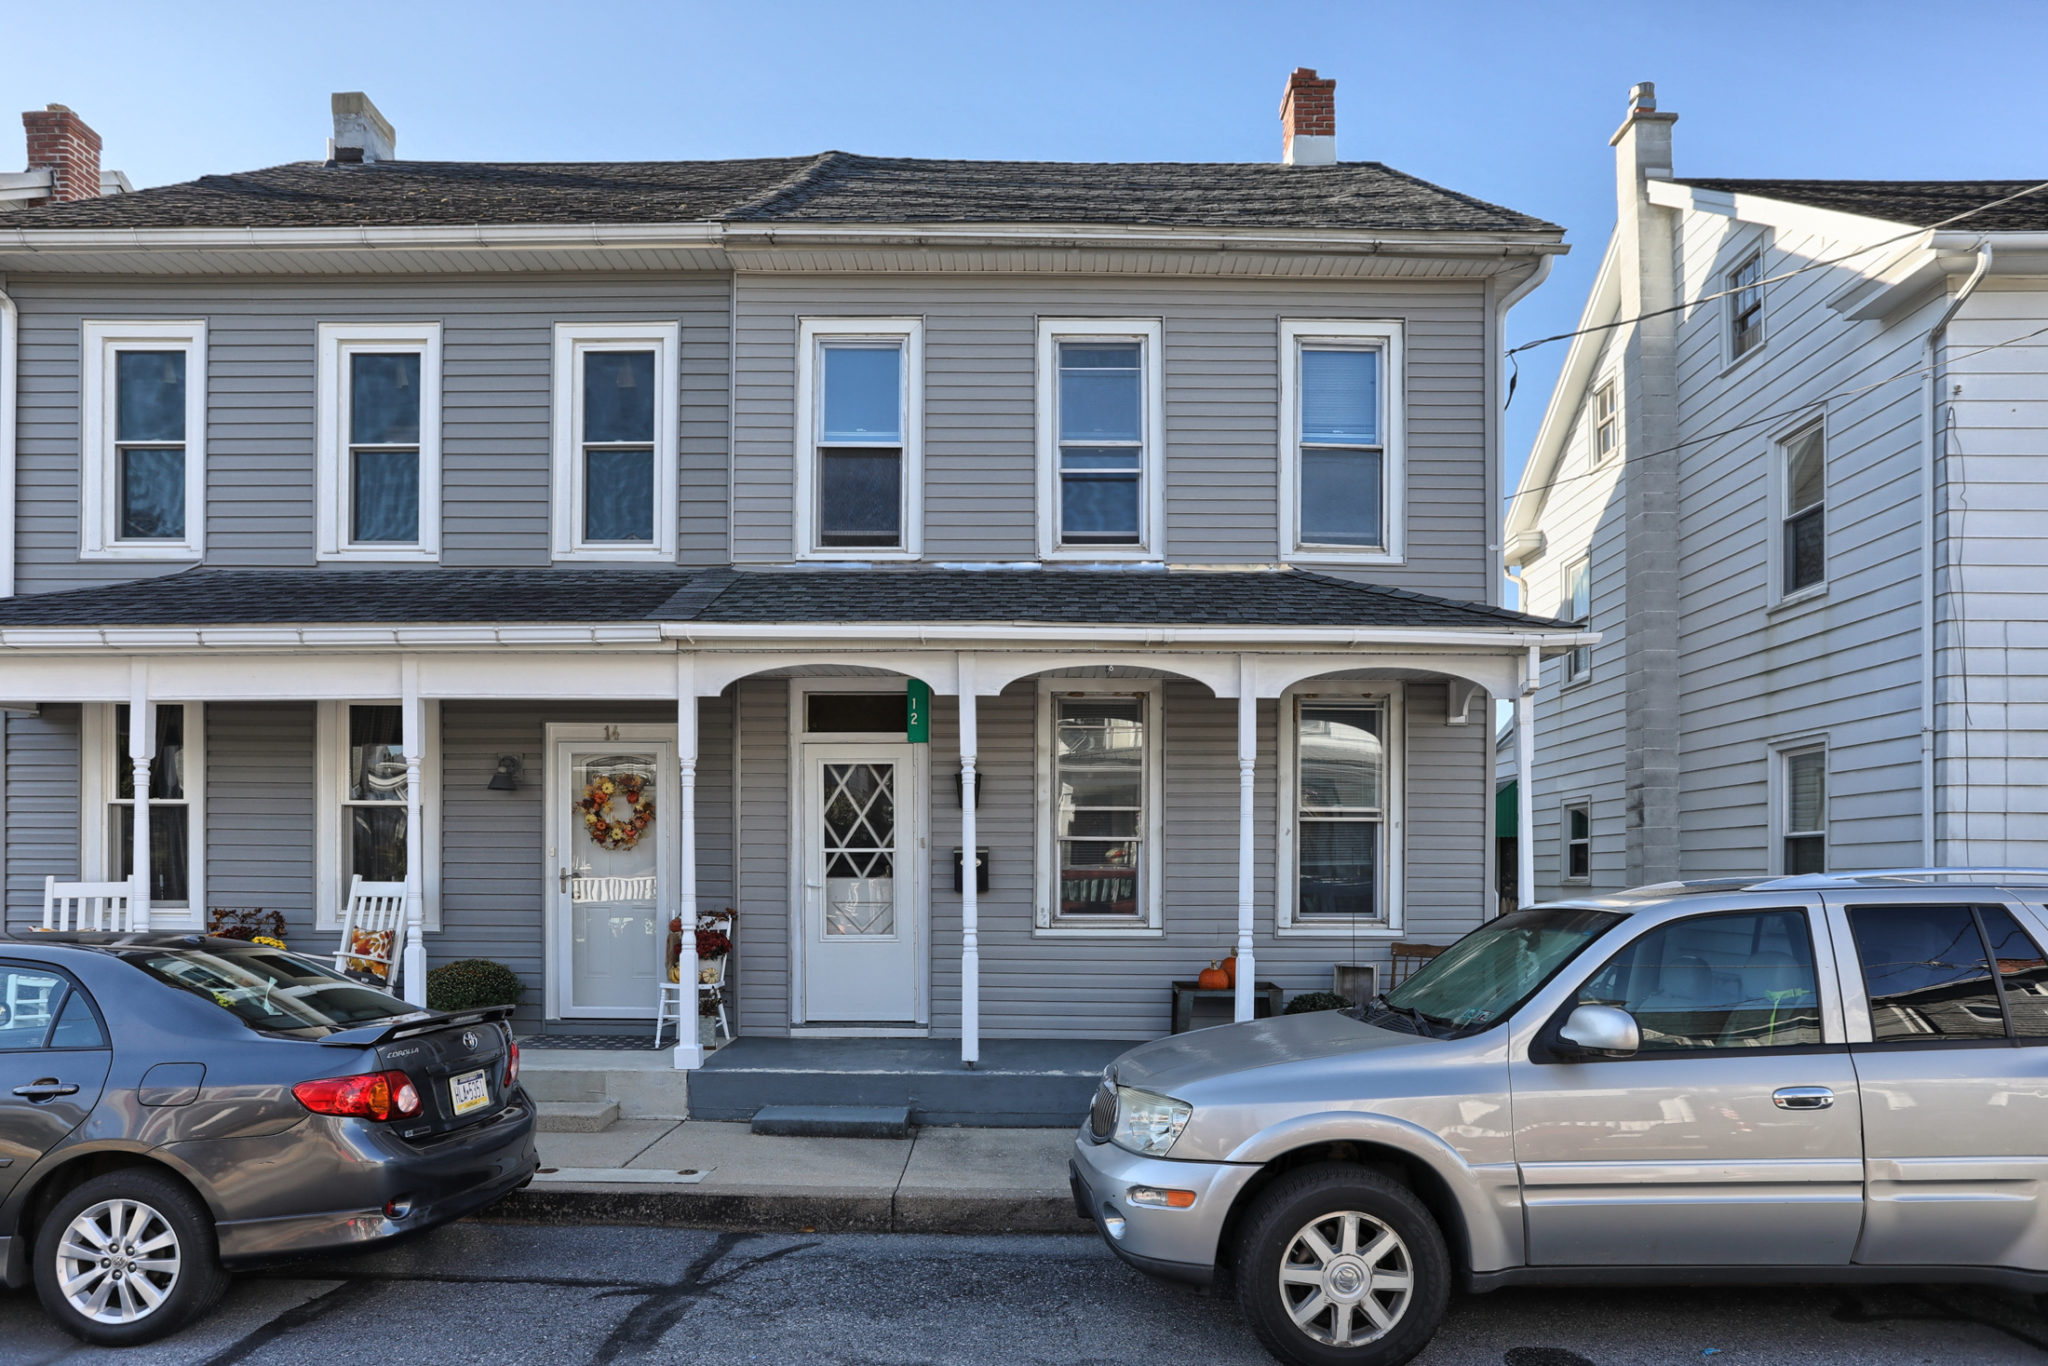 12 E. Maple Avenue - Spacious, well priced myerstown home